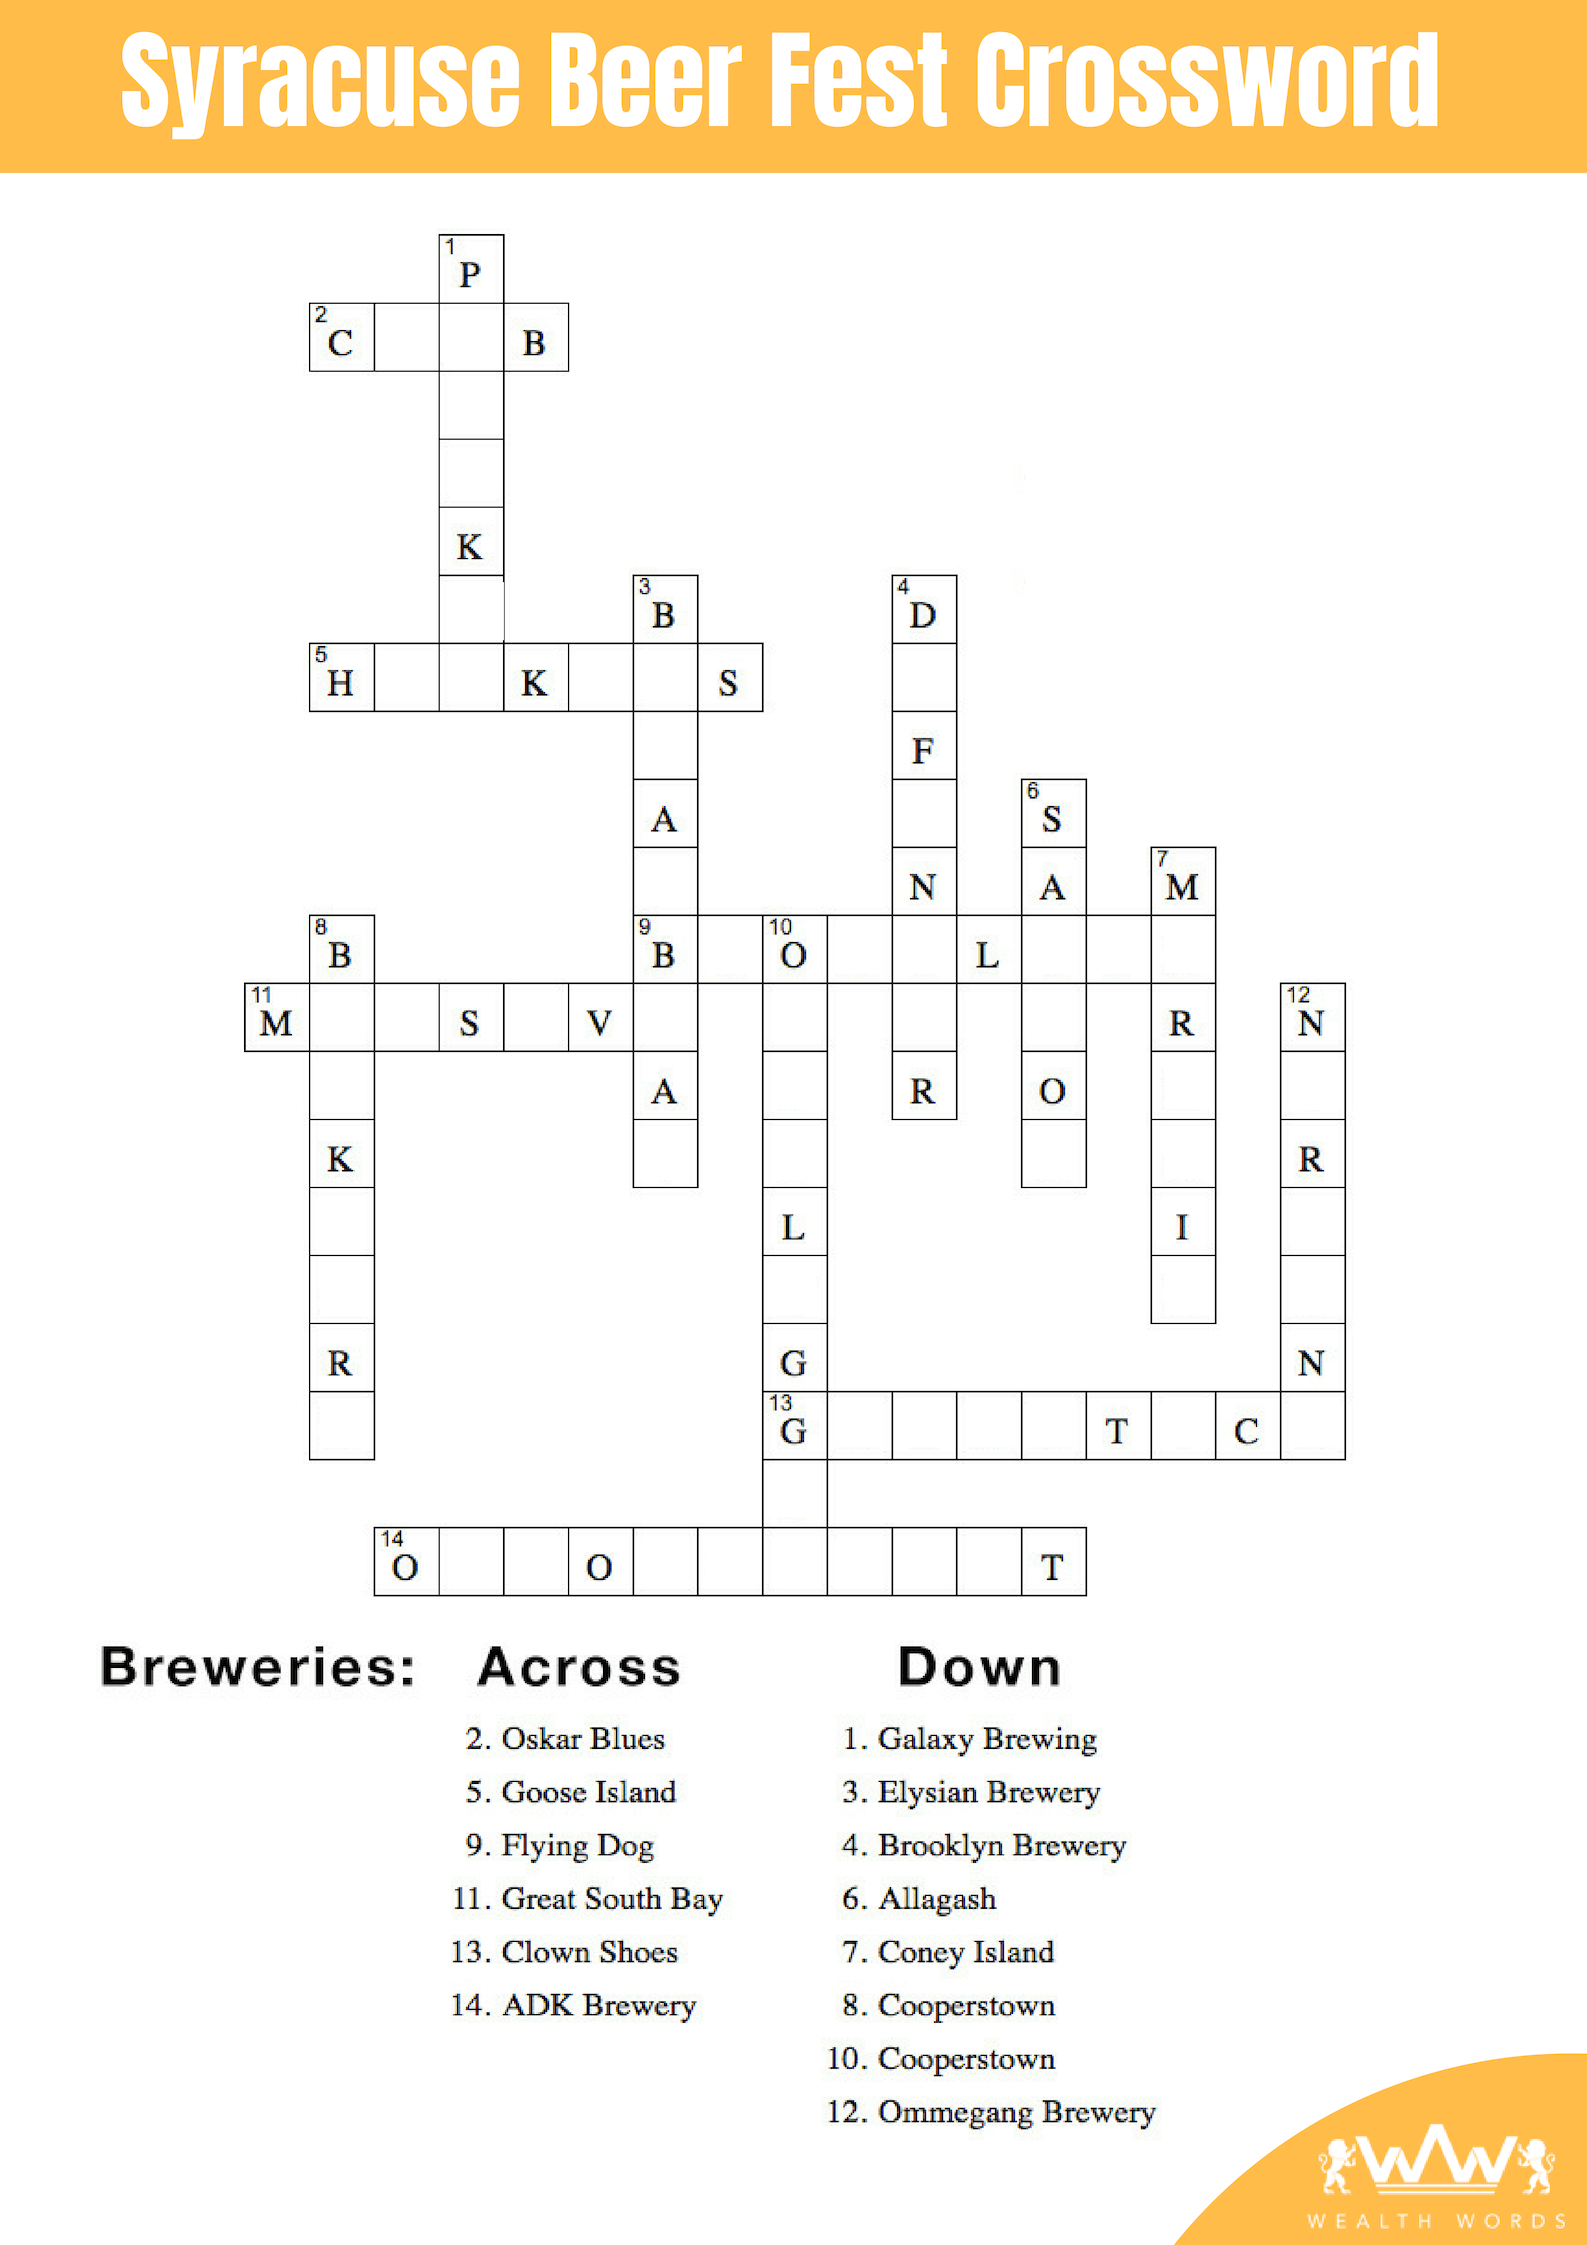 Syracuse Beer Fest Crossword